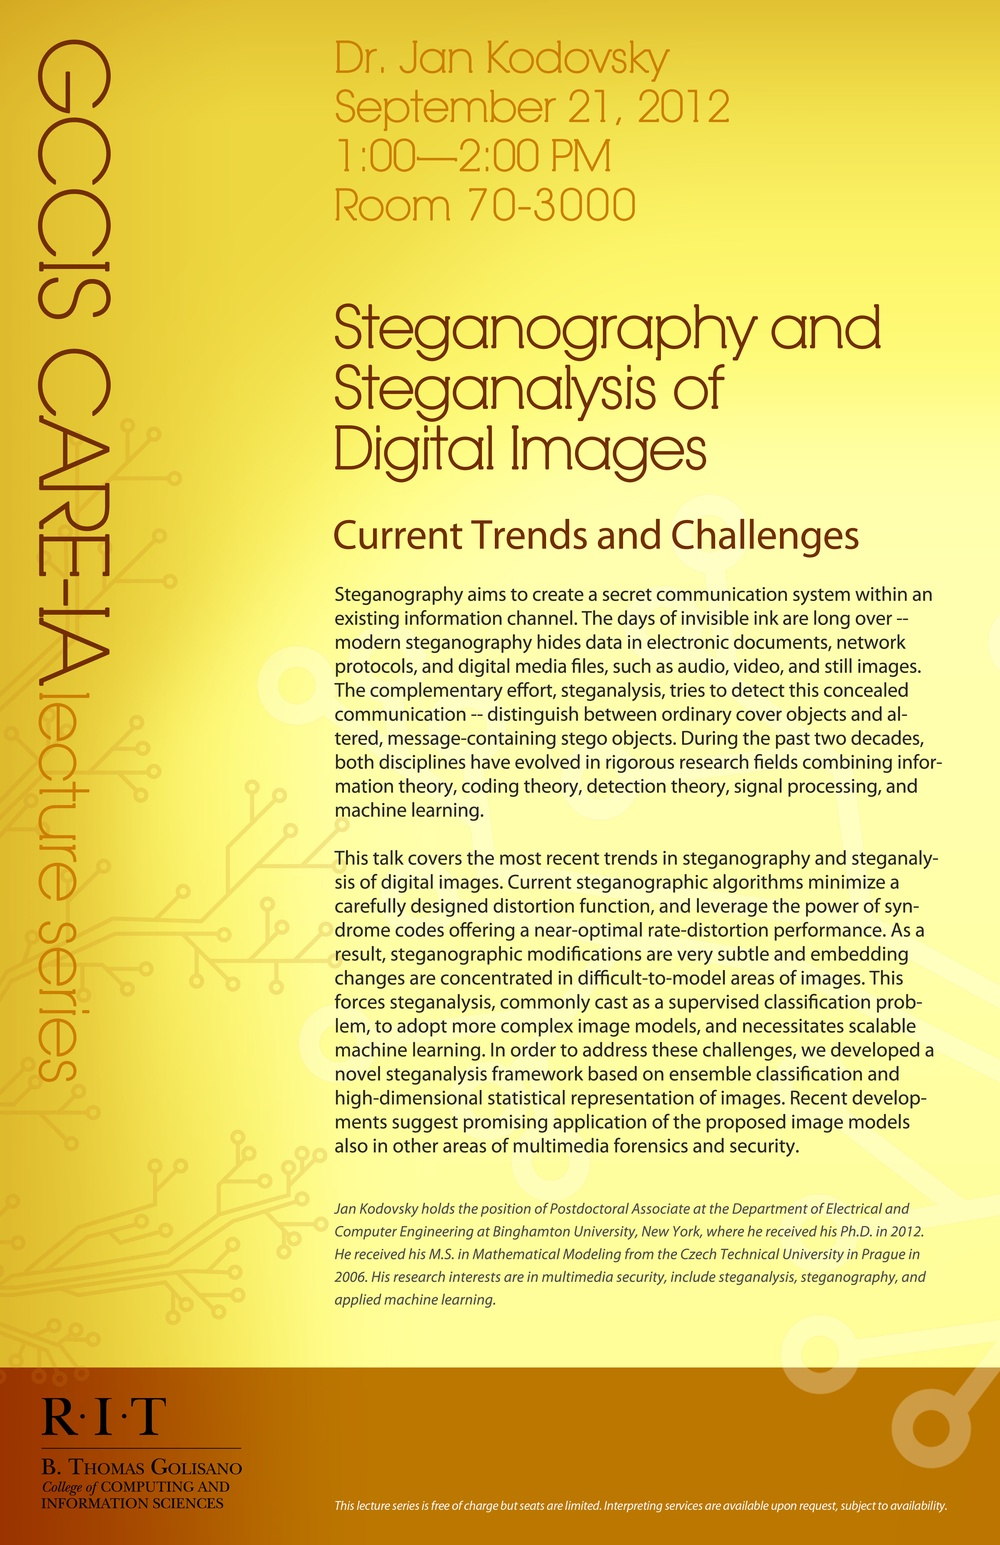 thesis on image steganography Data hiding in digital images : a steganographic paradigm a thesis submitted in partial fulfillment of  this is to certify that the thesis titled data hiding in digital images : a steganographic paradigm submitted by piyush goel, roll no 03cs3003, to the department of computer  steganography is the art of hiding information.